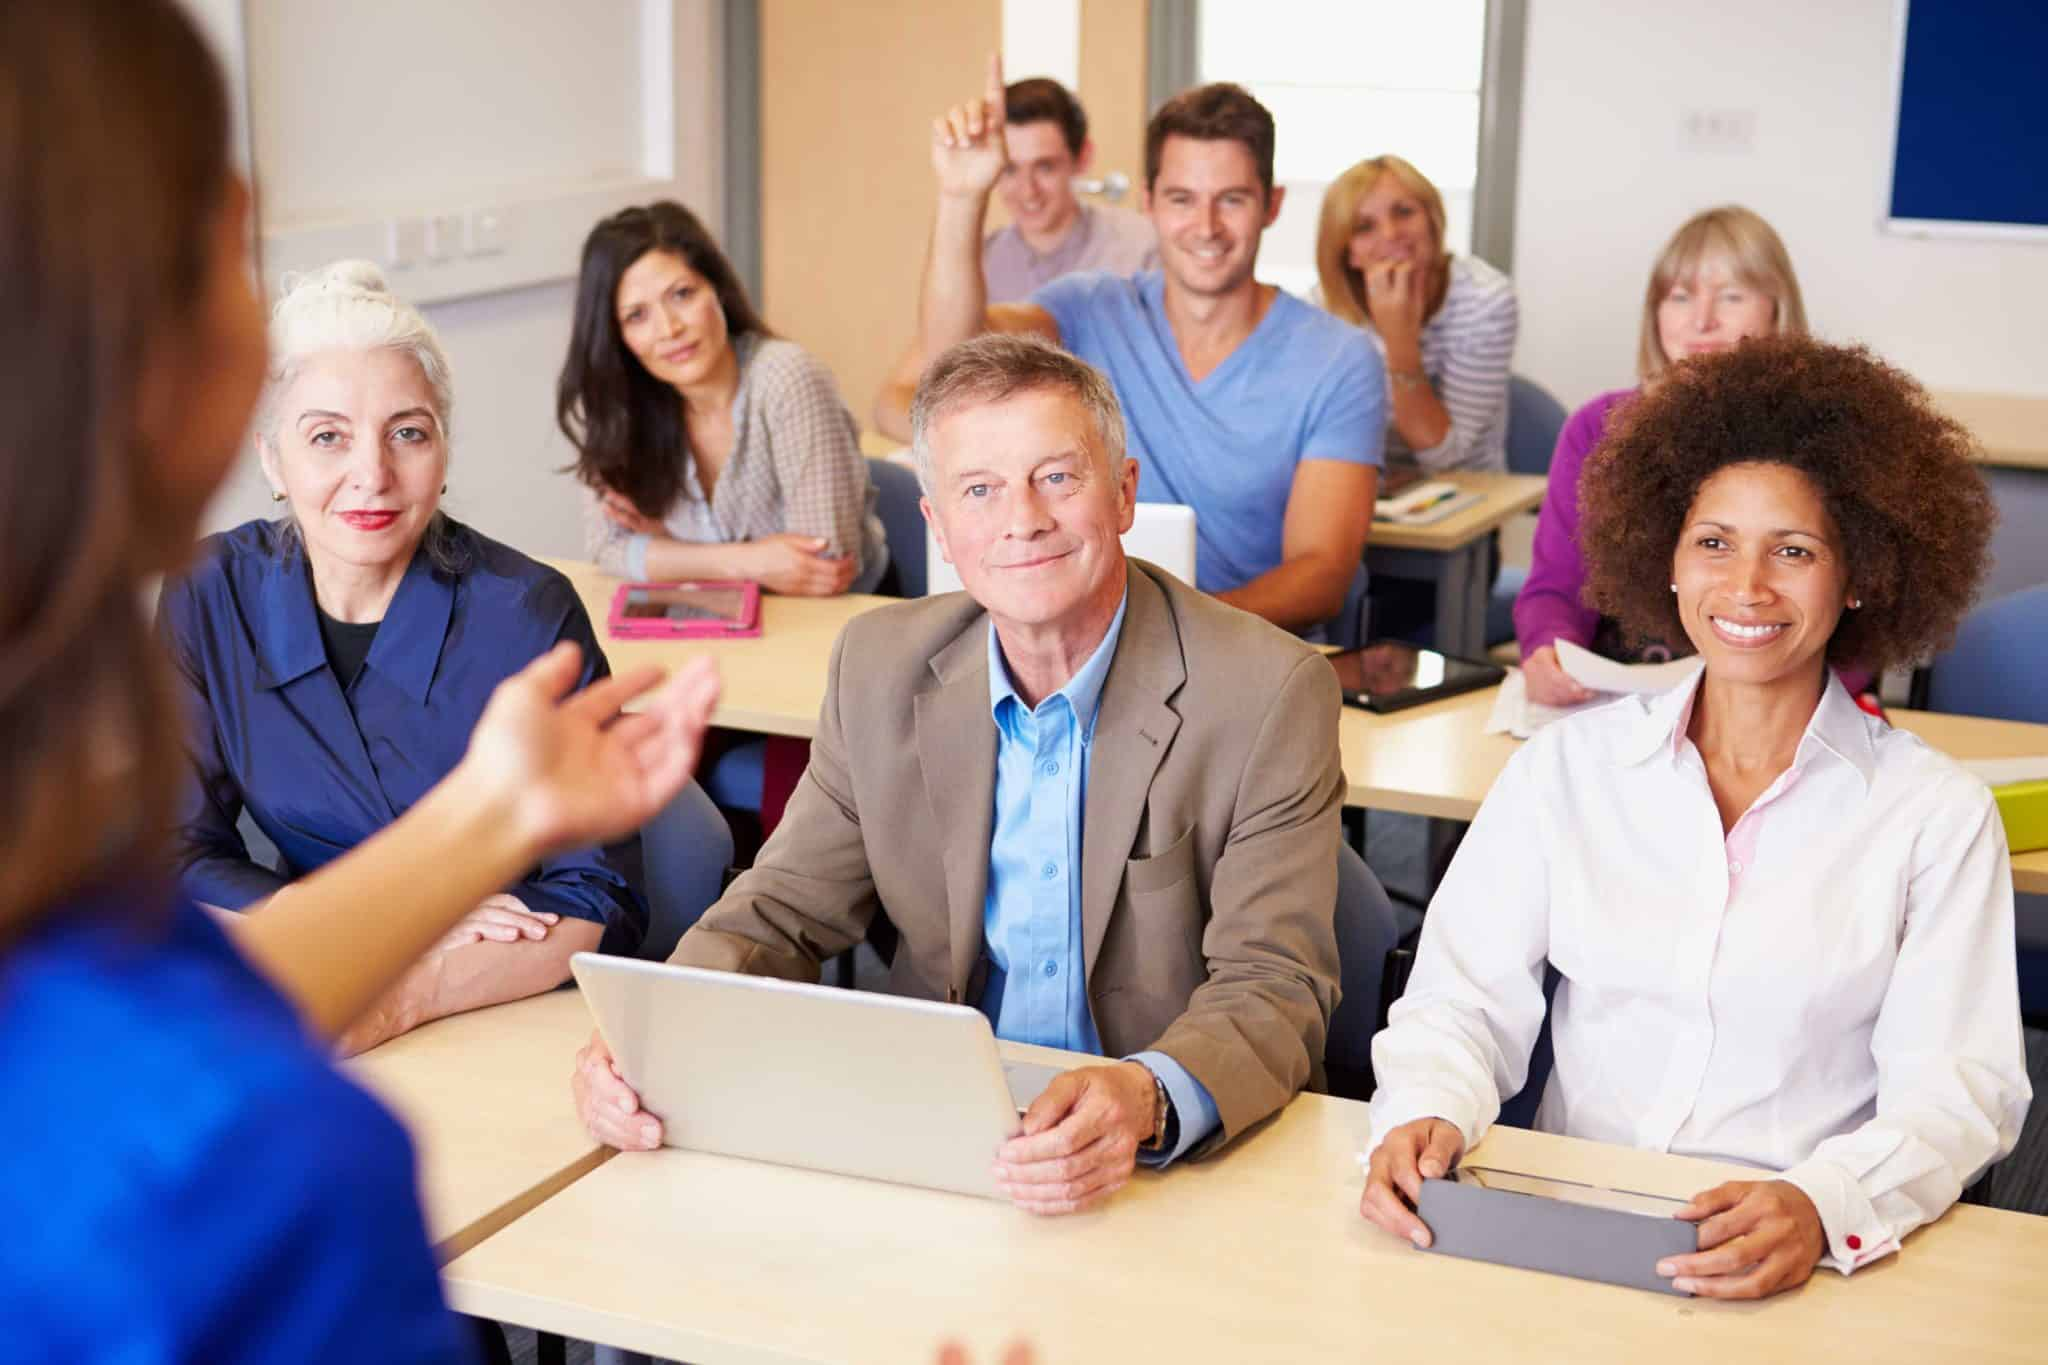 Adults in a classroom